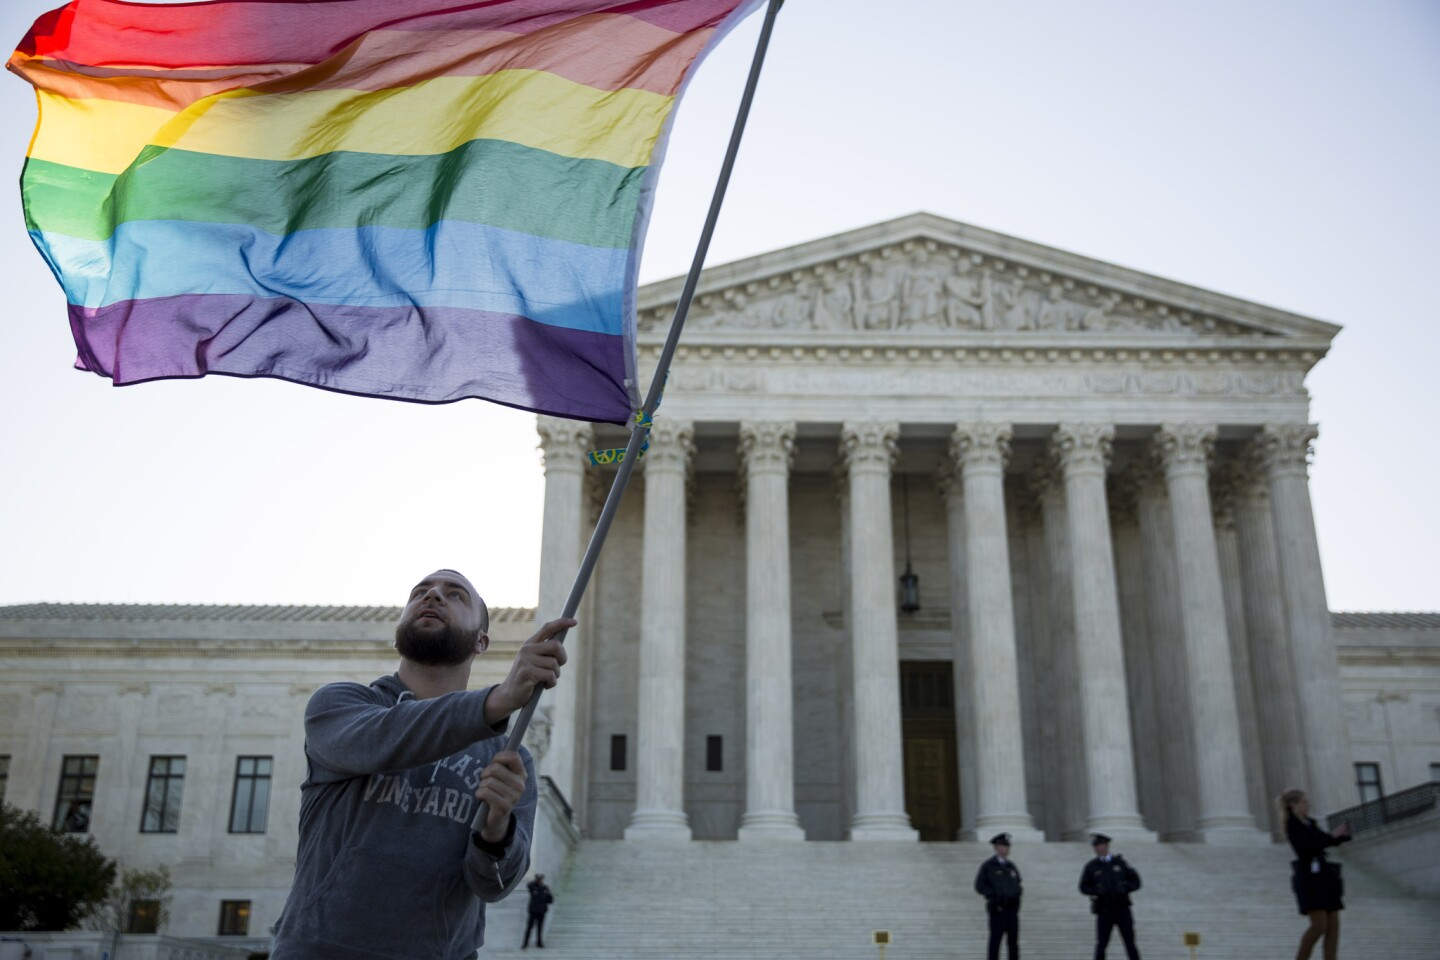 Supreme Court hears arguments on same-sex marriage